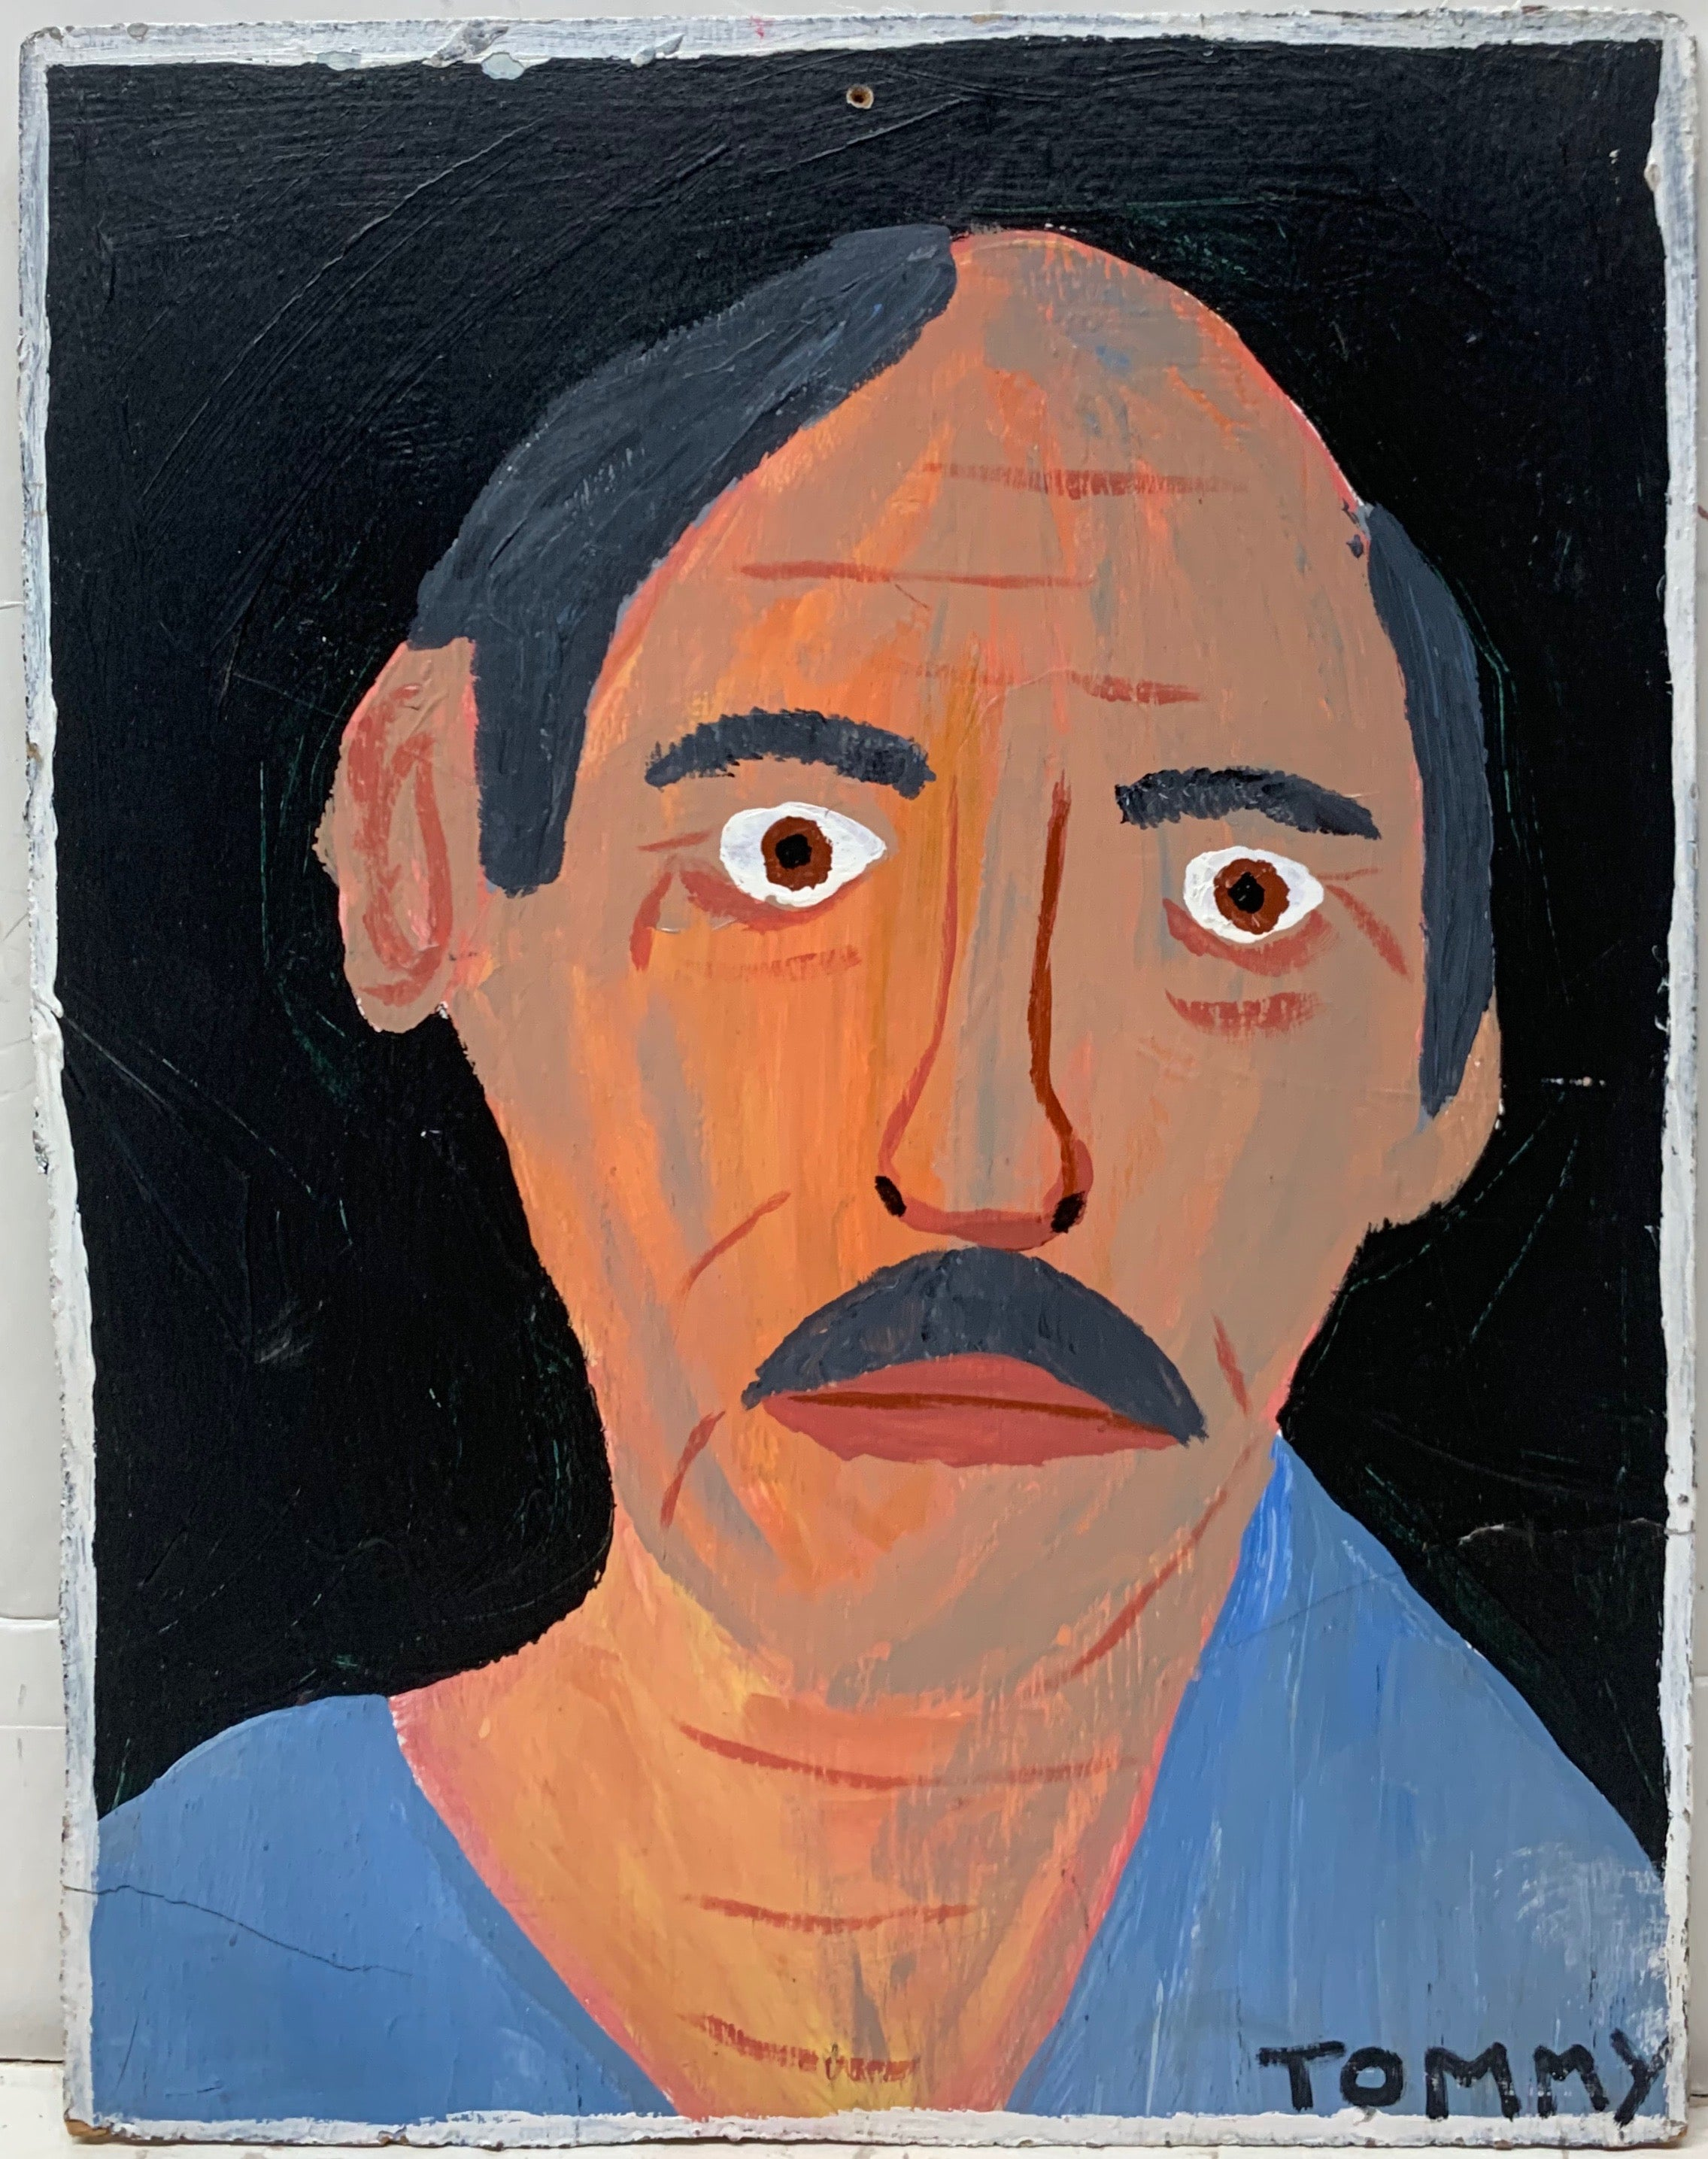 A Tommy Cheng portrait of a balding, gray-haired man with a wrinkled face and a gray, bushy moustache.